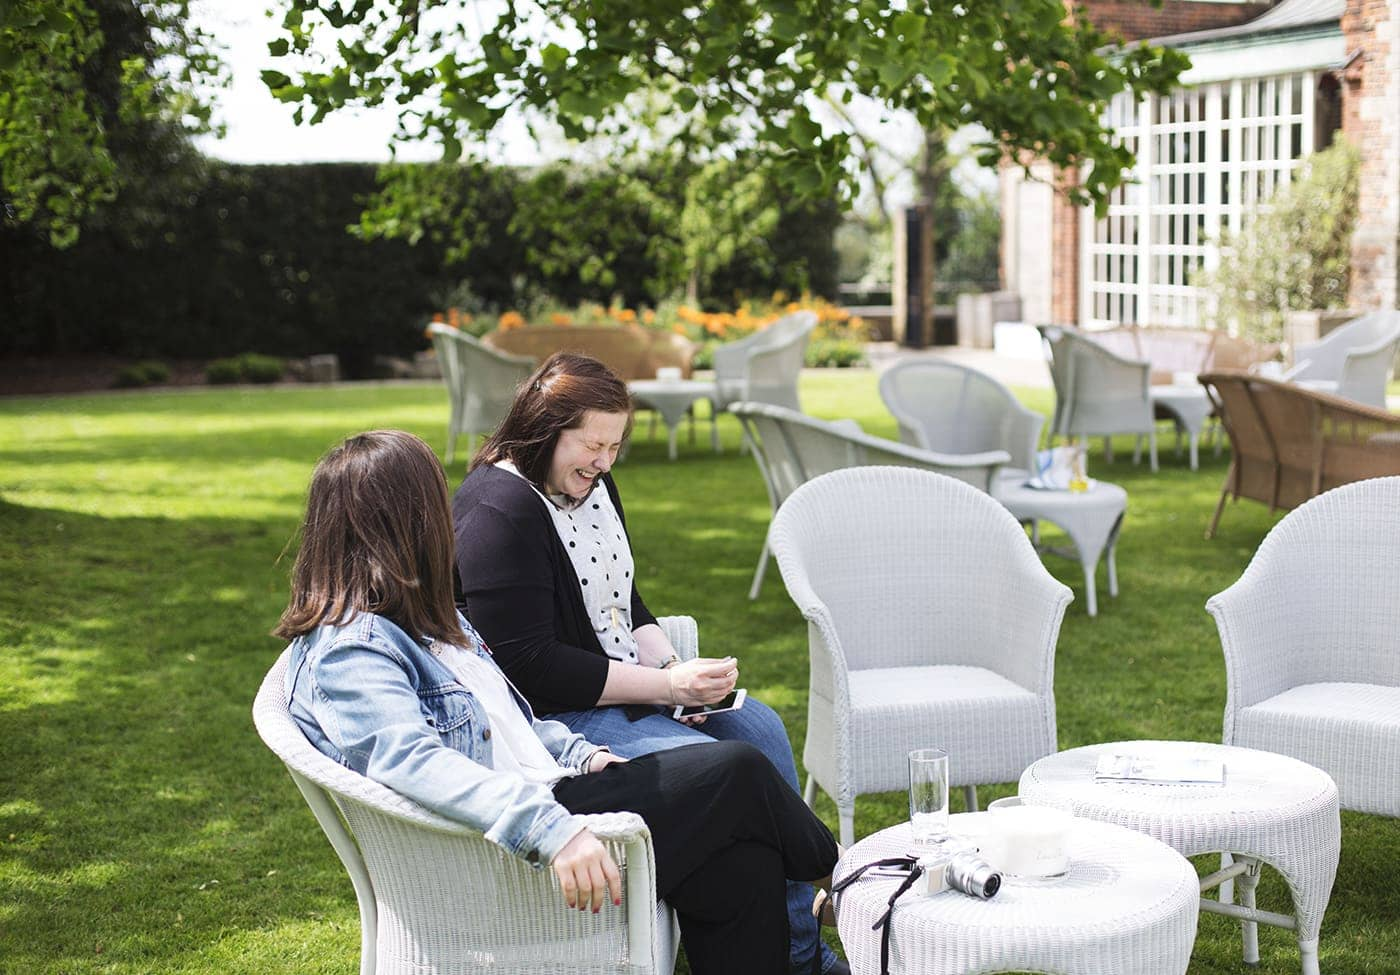 Jo Malone summer entertaining | Eltham palace grounds